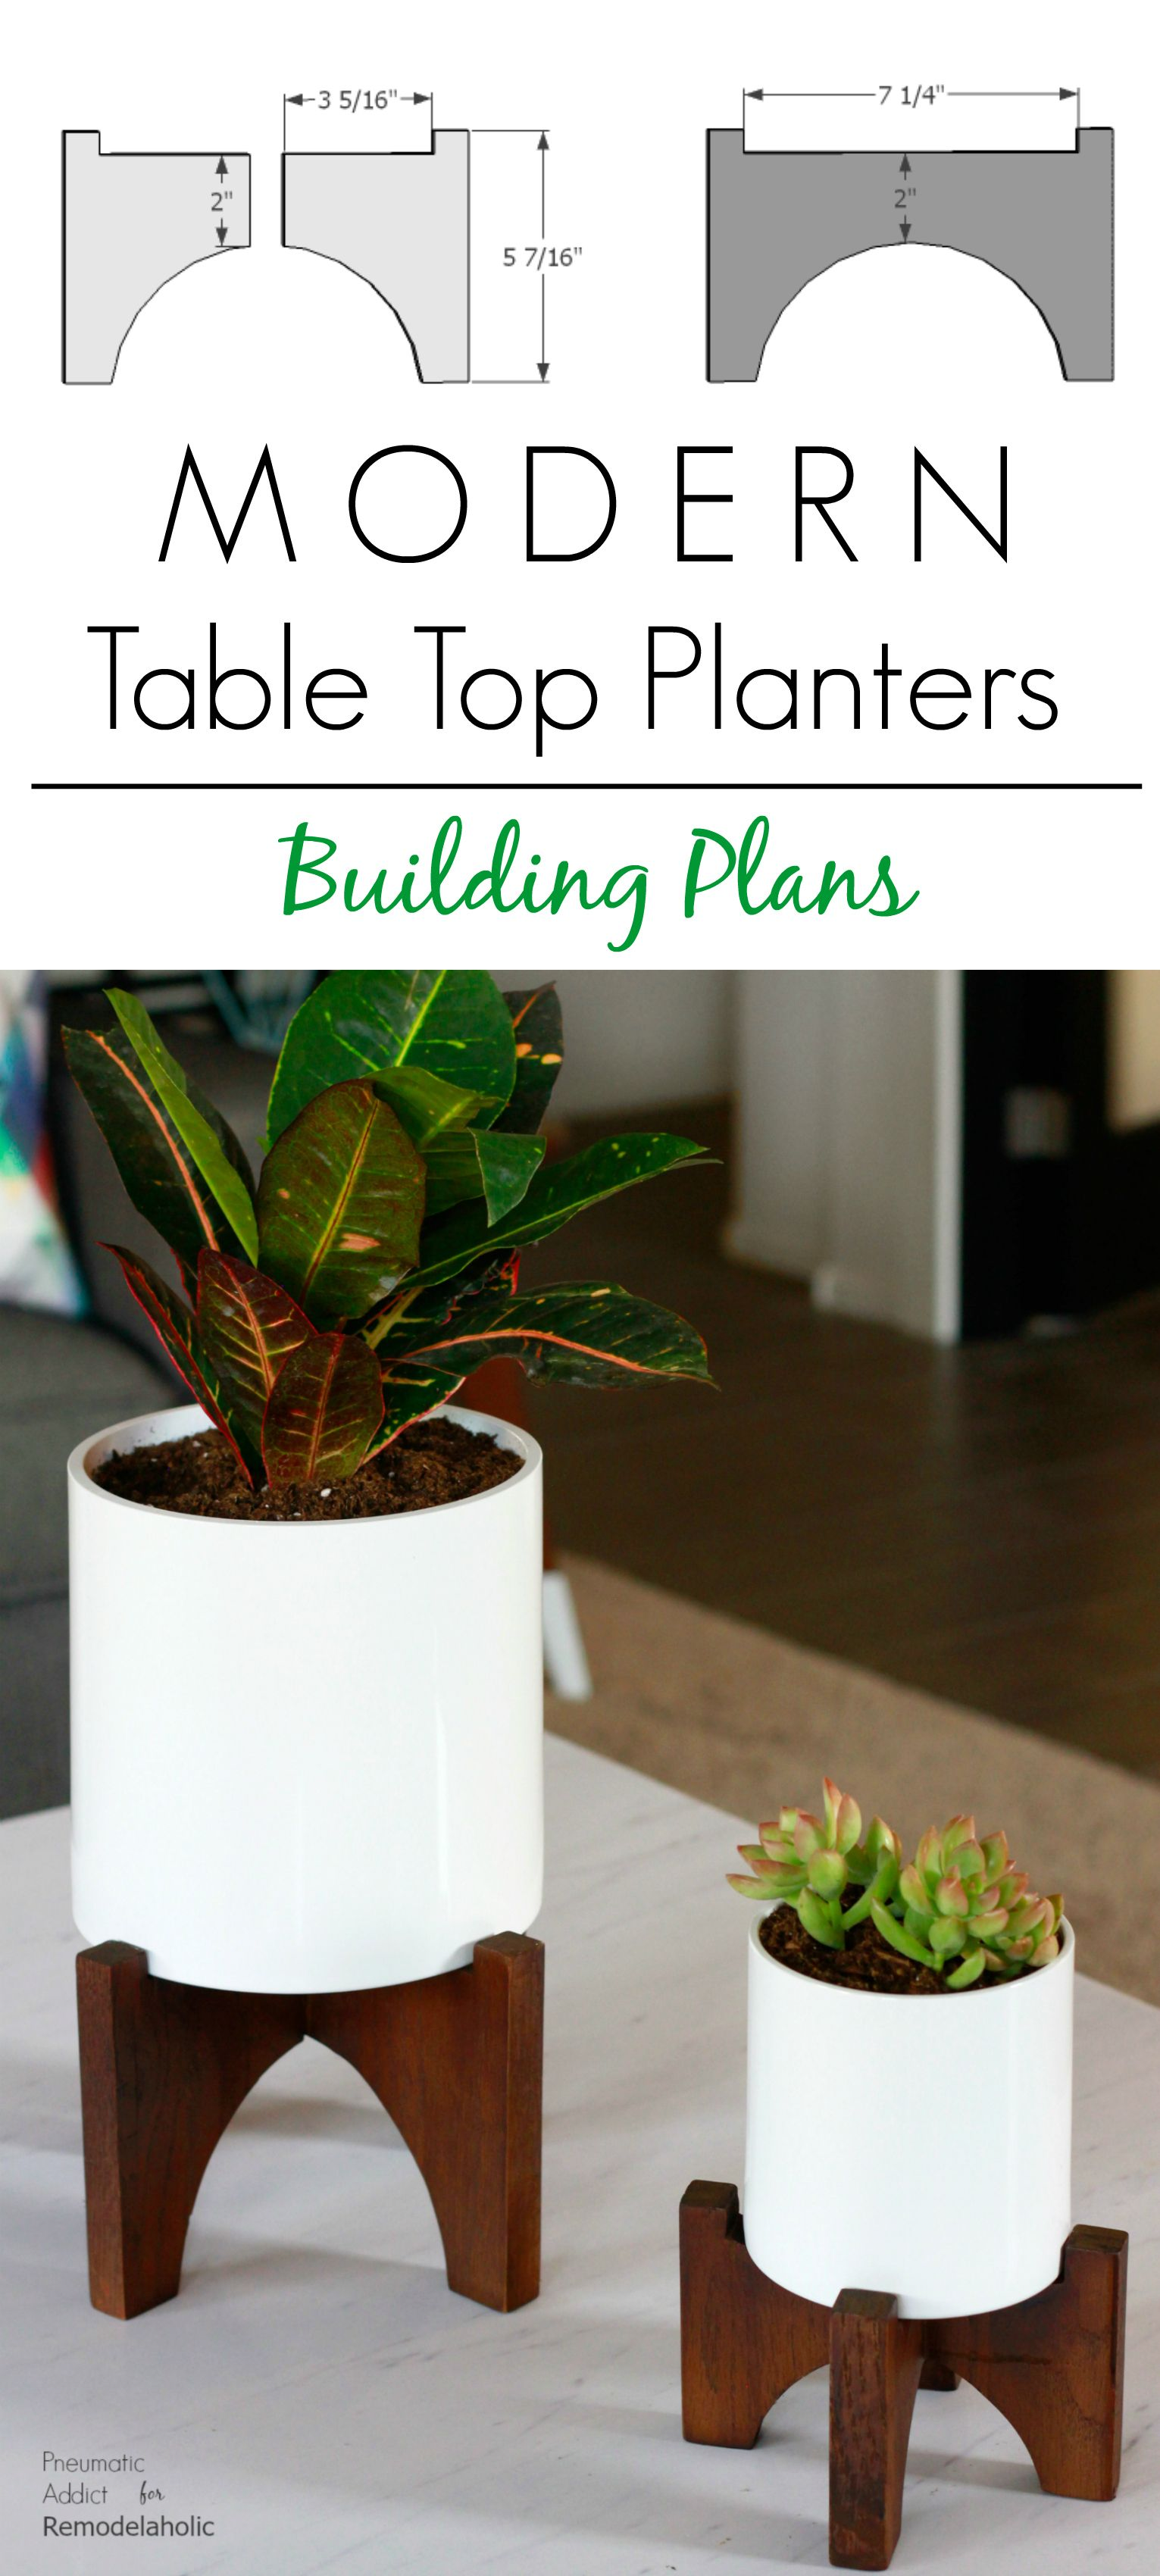 Modern Table Top Planters Building Plans